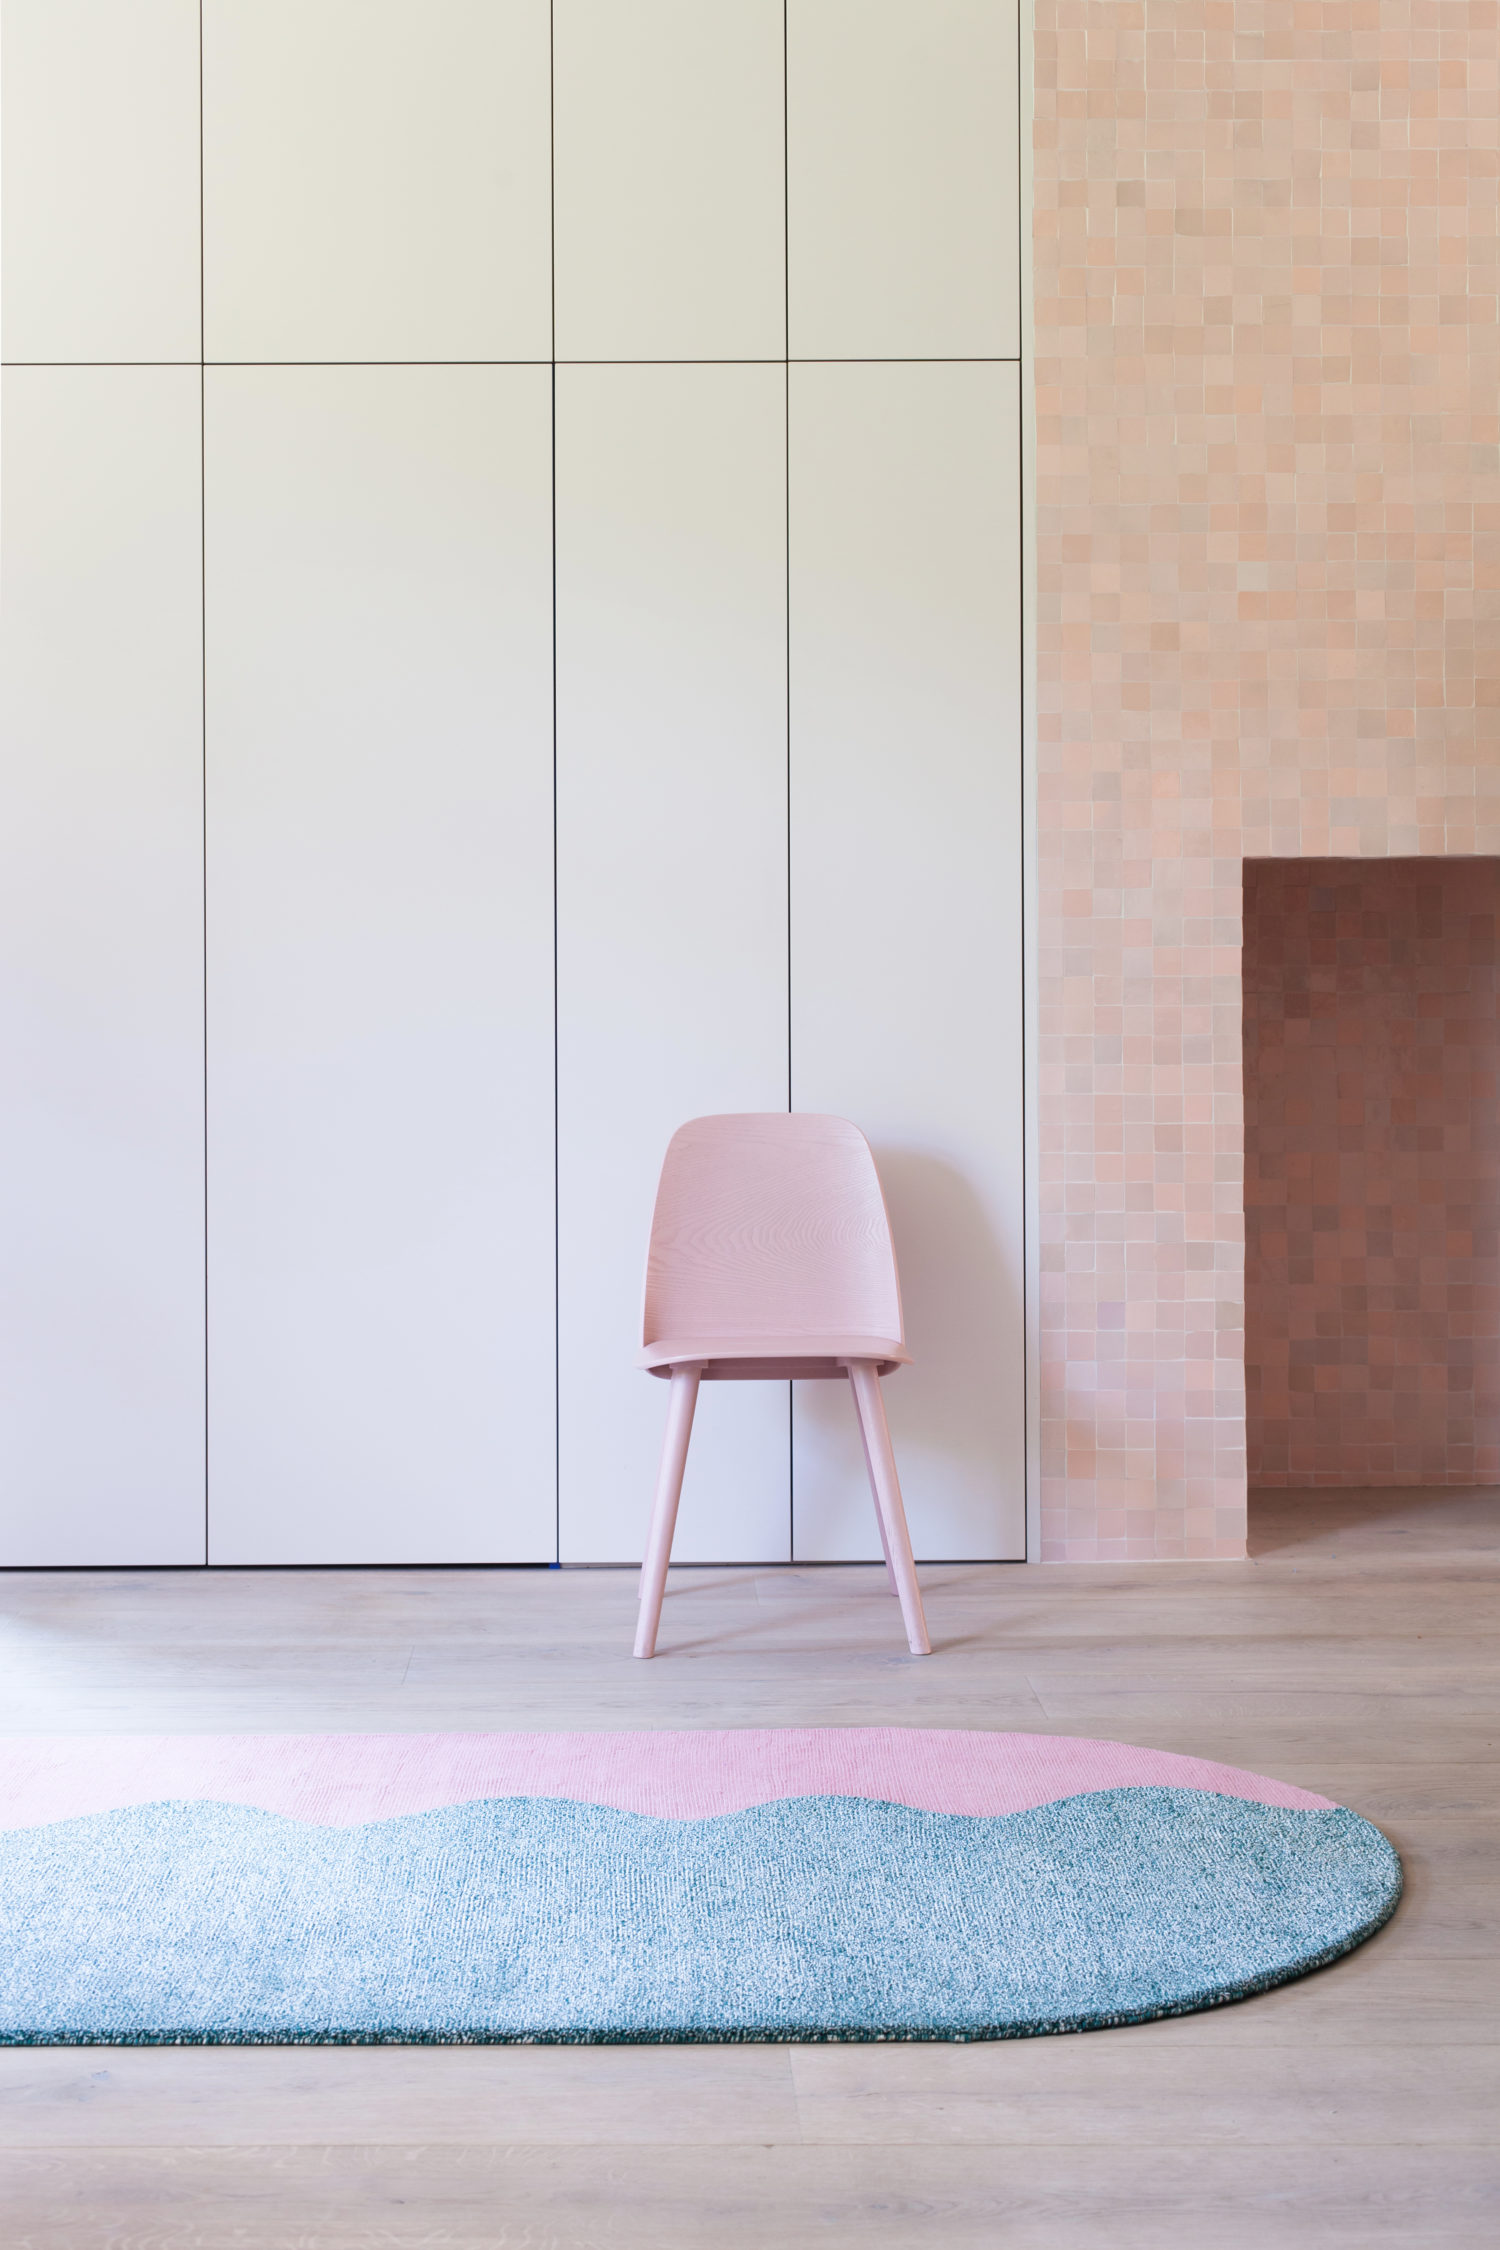 2LG x FLOOR_STORY collection is a textile story of the pair's home restoration.